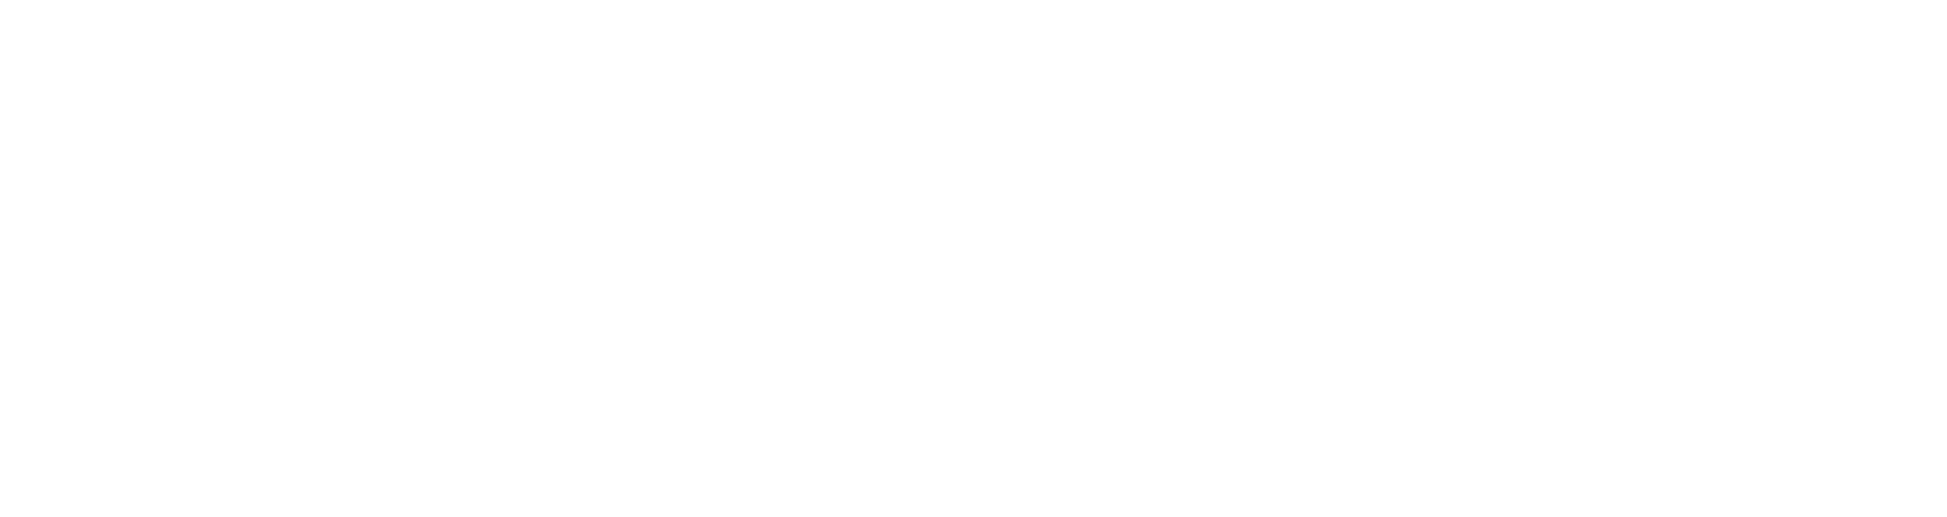 brightedge datamind sears logo